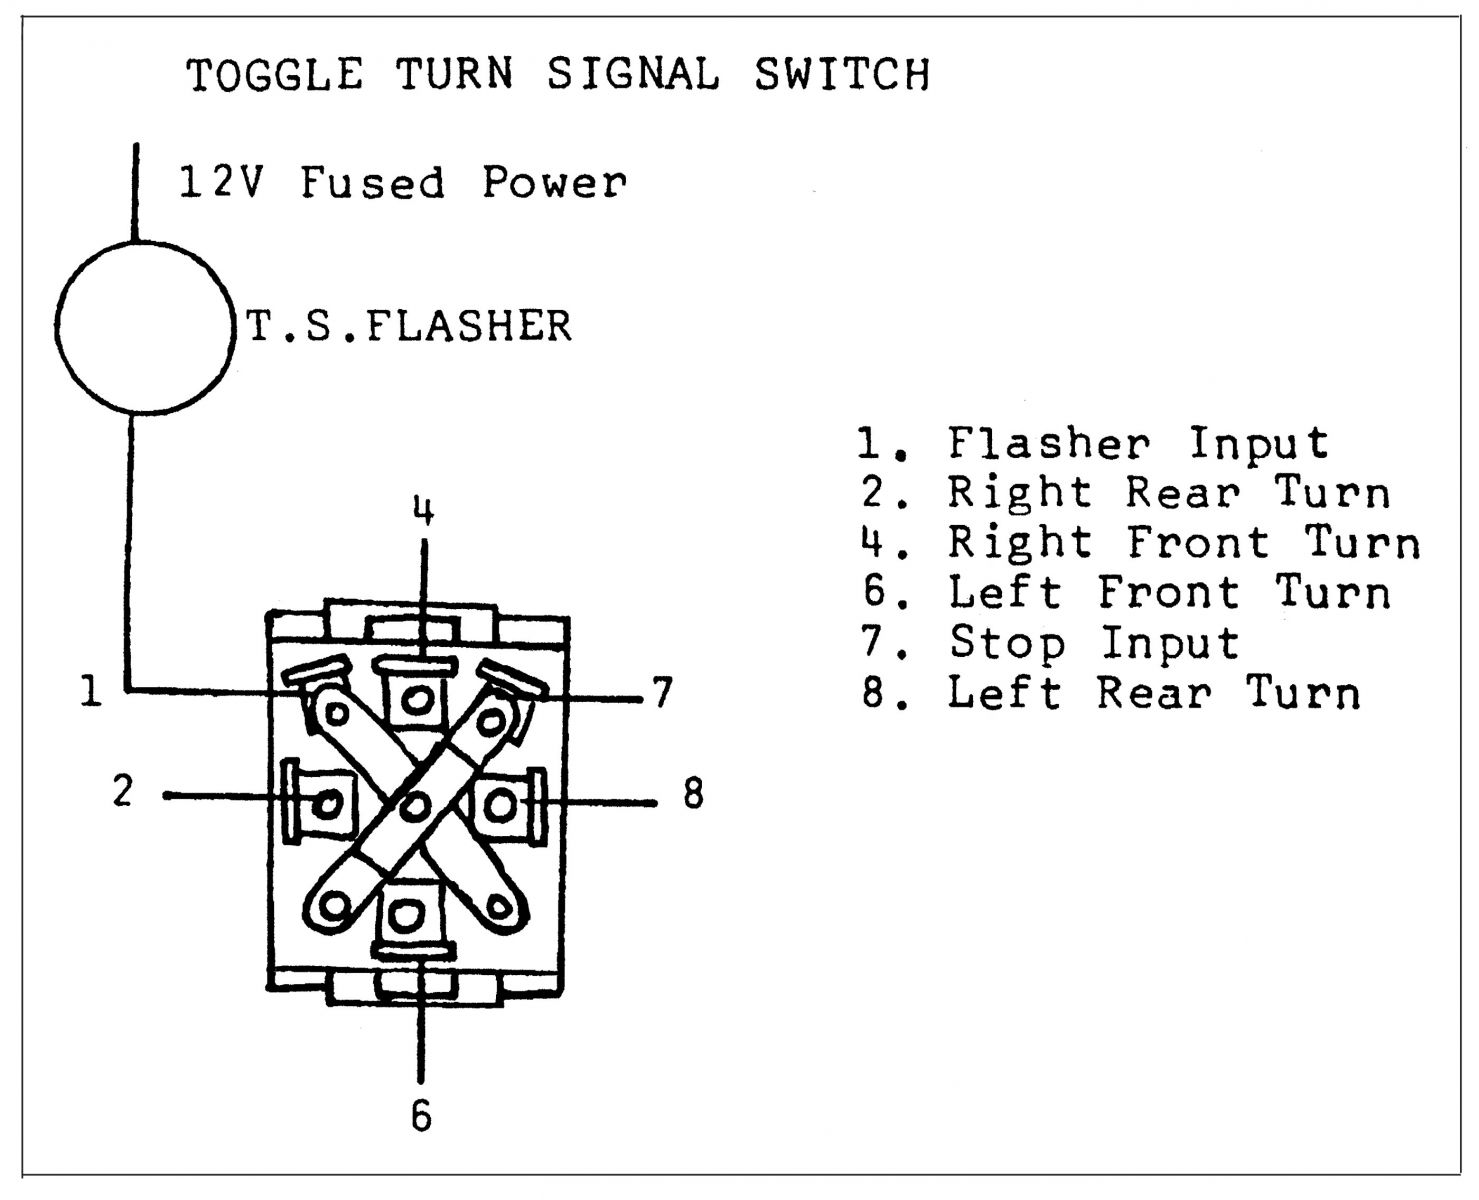 my vehicle has a gm style fuse block with the flasher circuit included so i  just turn signals for early hot rods